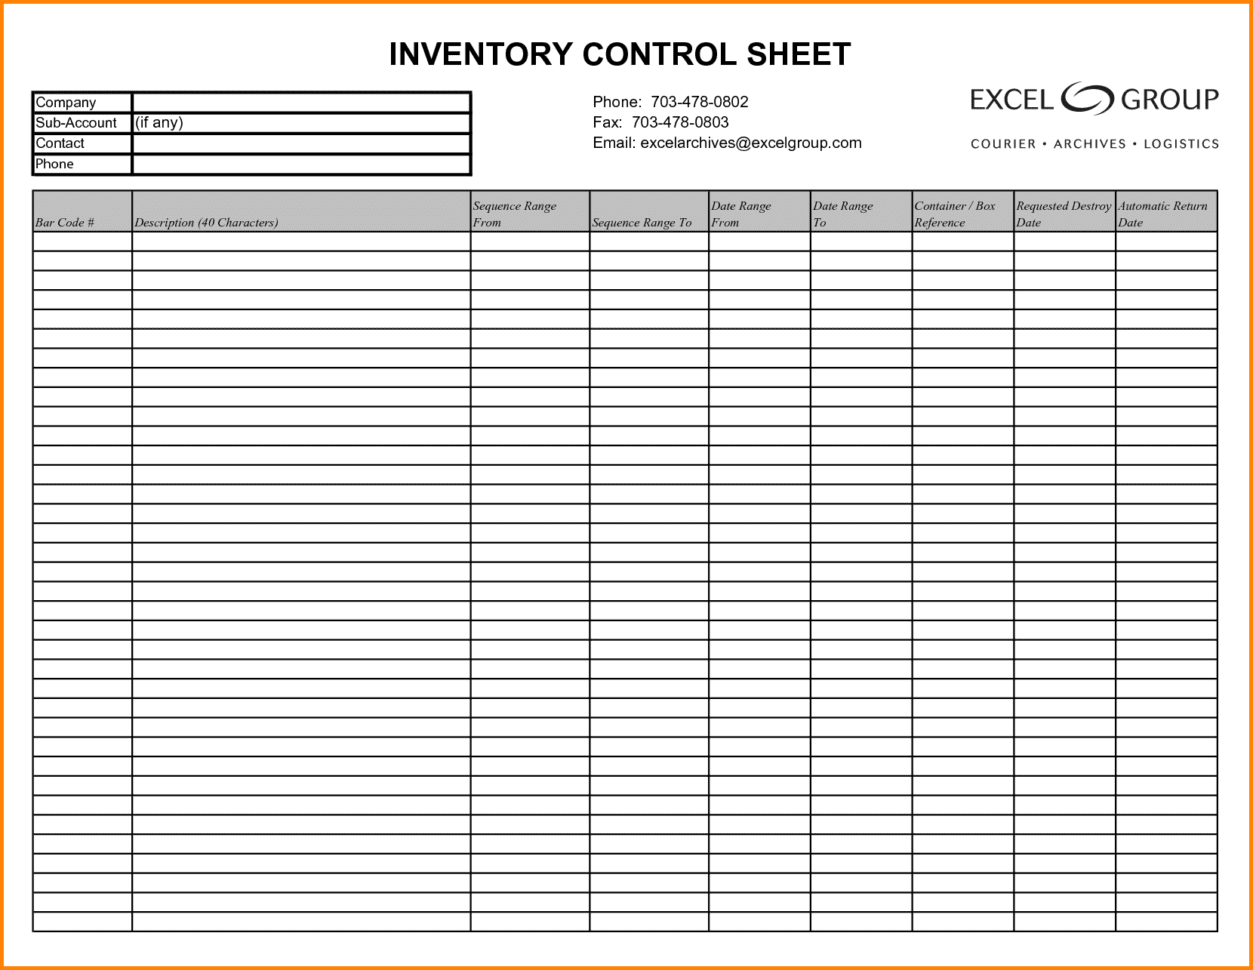 Inventory Excel Formulas Excel Inventory Tracking Template How To Manage Inventory With Excel Free Inventory Templates Equipment Inventory Template Small Business Inventory Spreadsheet Template Inventory Sheet Template Free Printable  Inventory Excel Formulas Inventory Spreadsheet Templates Spreadsheet Templates for Busines